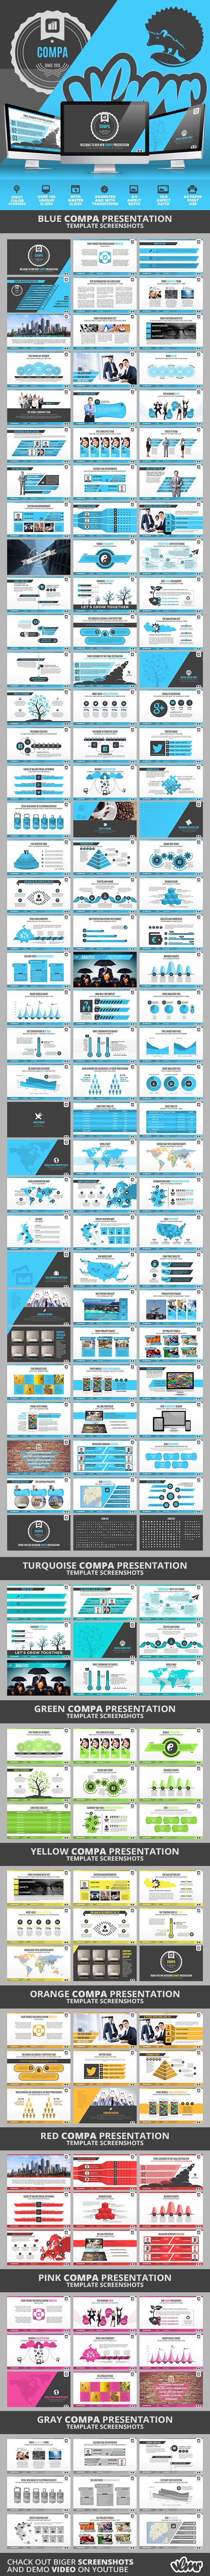 Compa PowerPoint Presentation Template